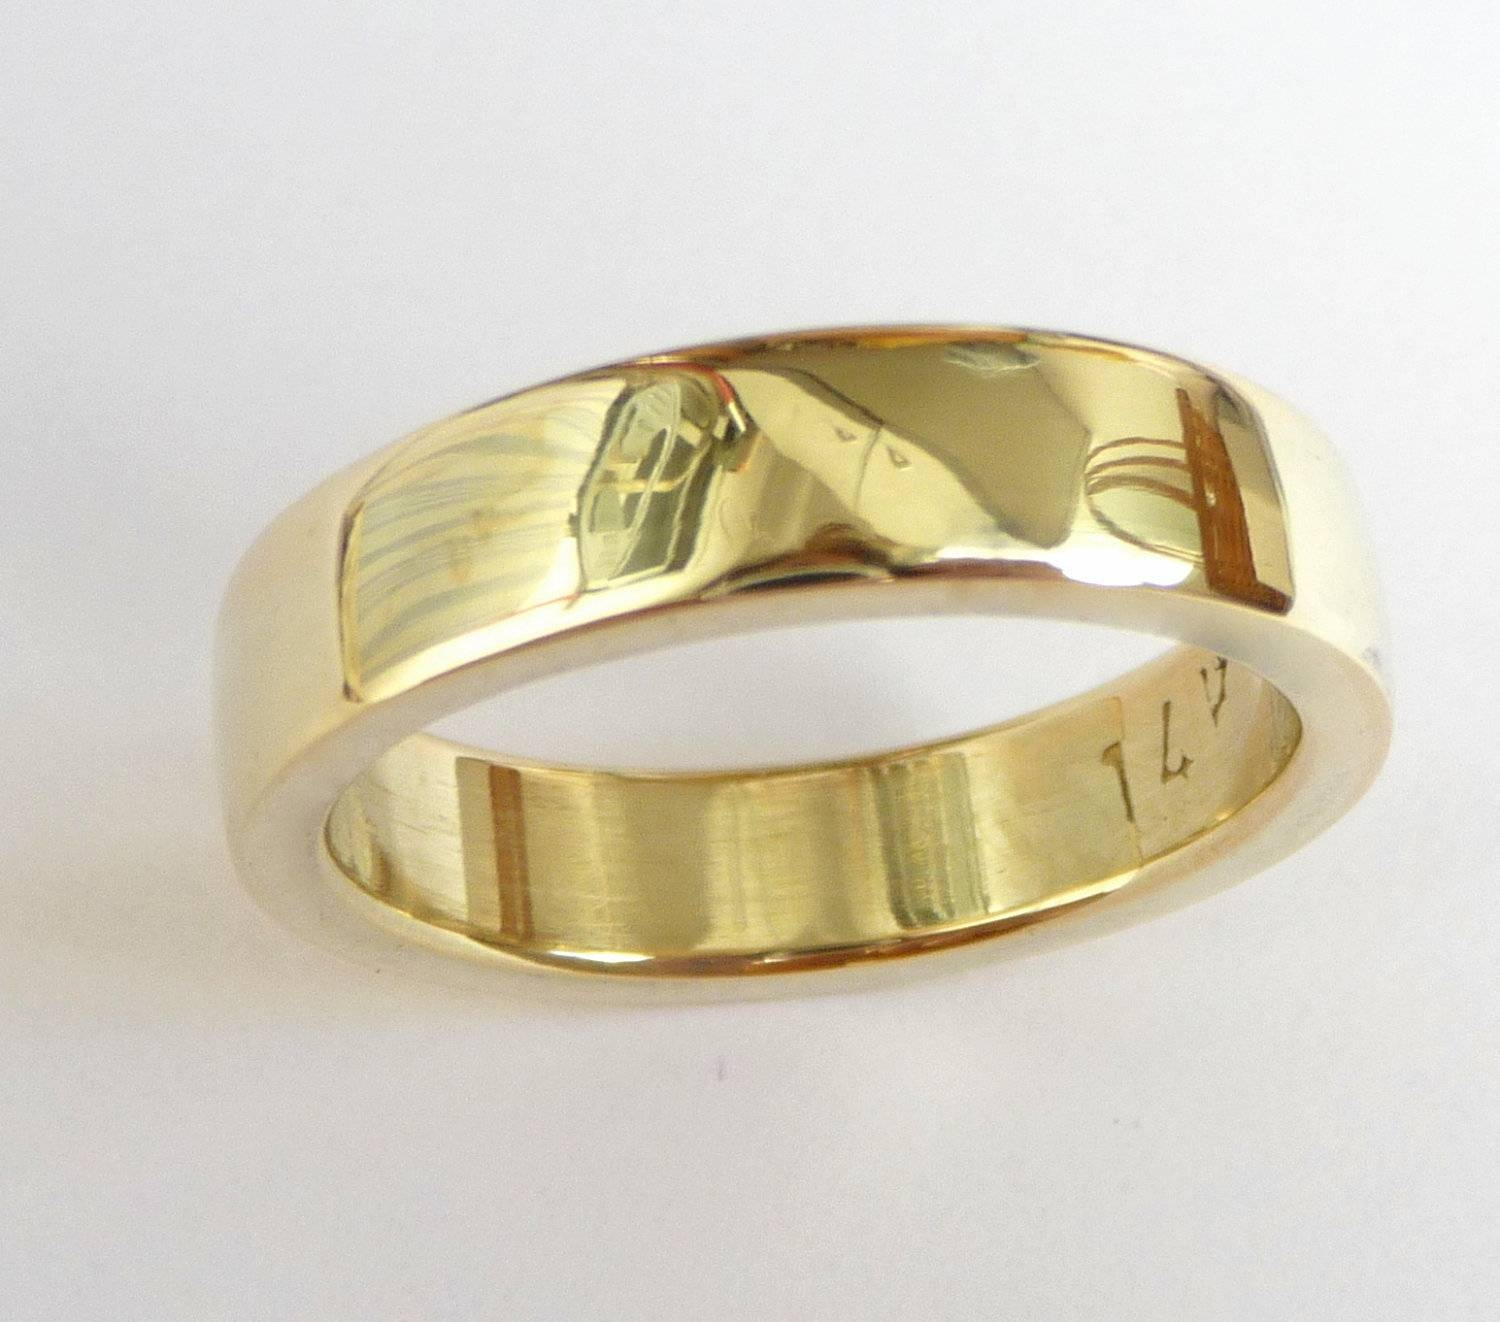 Mens Wedding Band Men's Gold Ring Men Wedding Ring Thick Regarding Wedding Rings For Men Gold (Gallery 5 of 15)